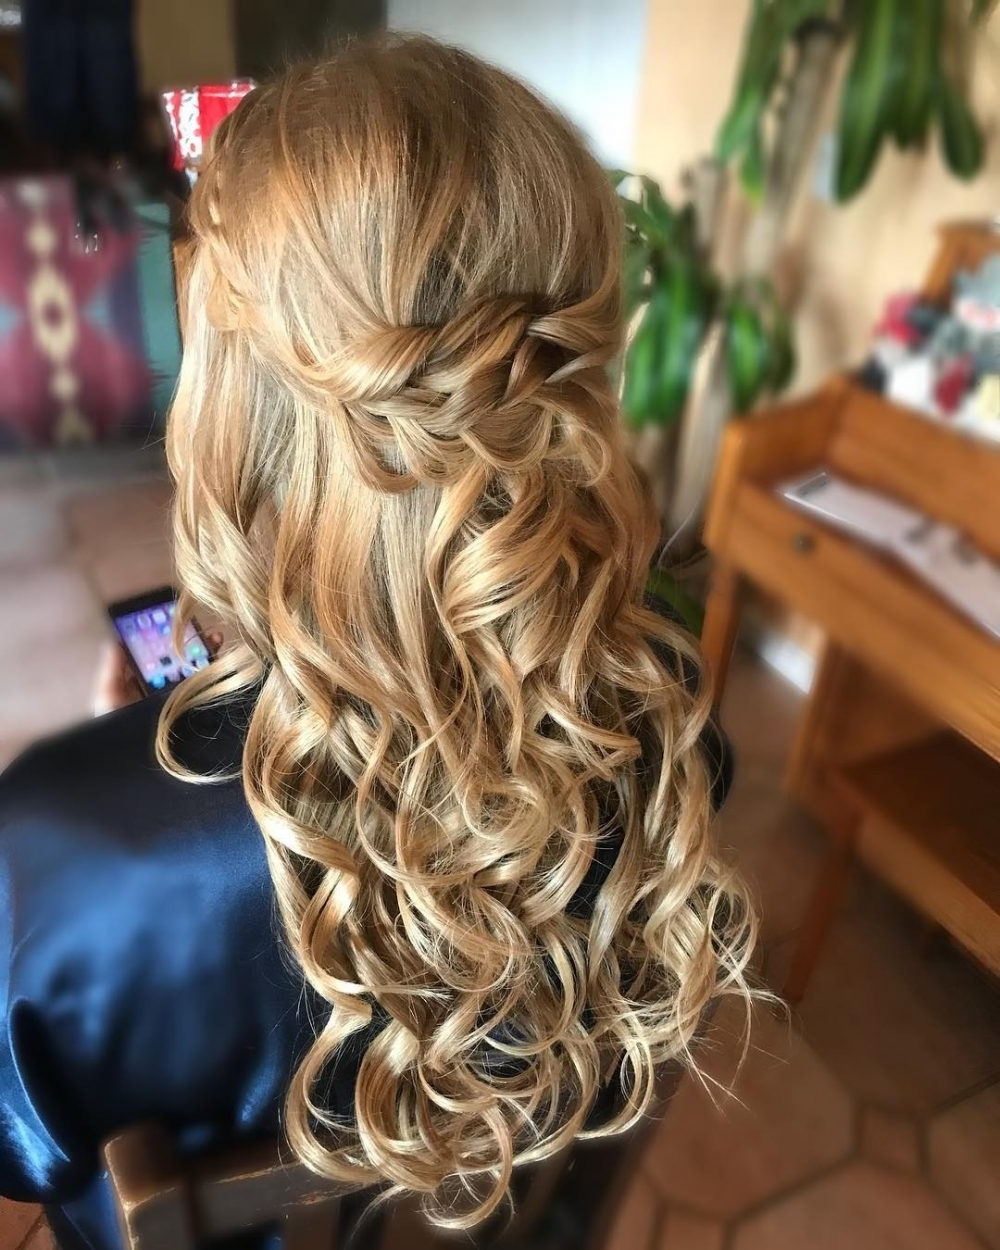 Wedding Hairstyles For Long Hair: 24 Creative & Unique Wedding Styles For 2017 Wedding Hairstyles For Long Boho Hair (View 15 of 15)